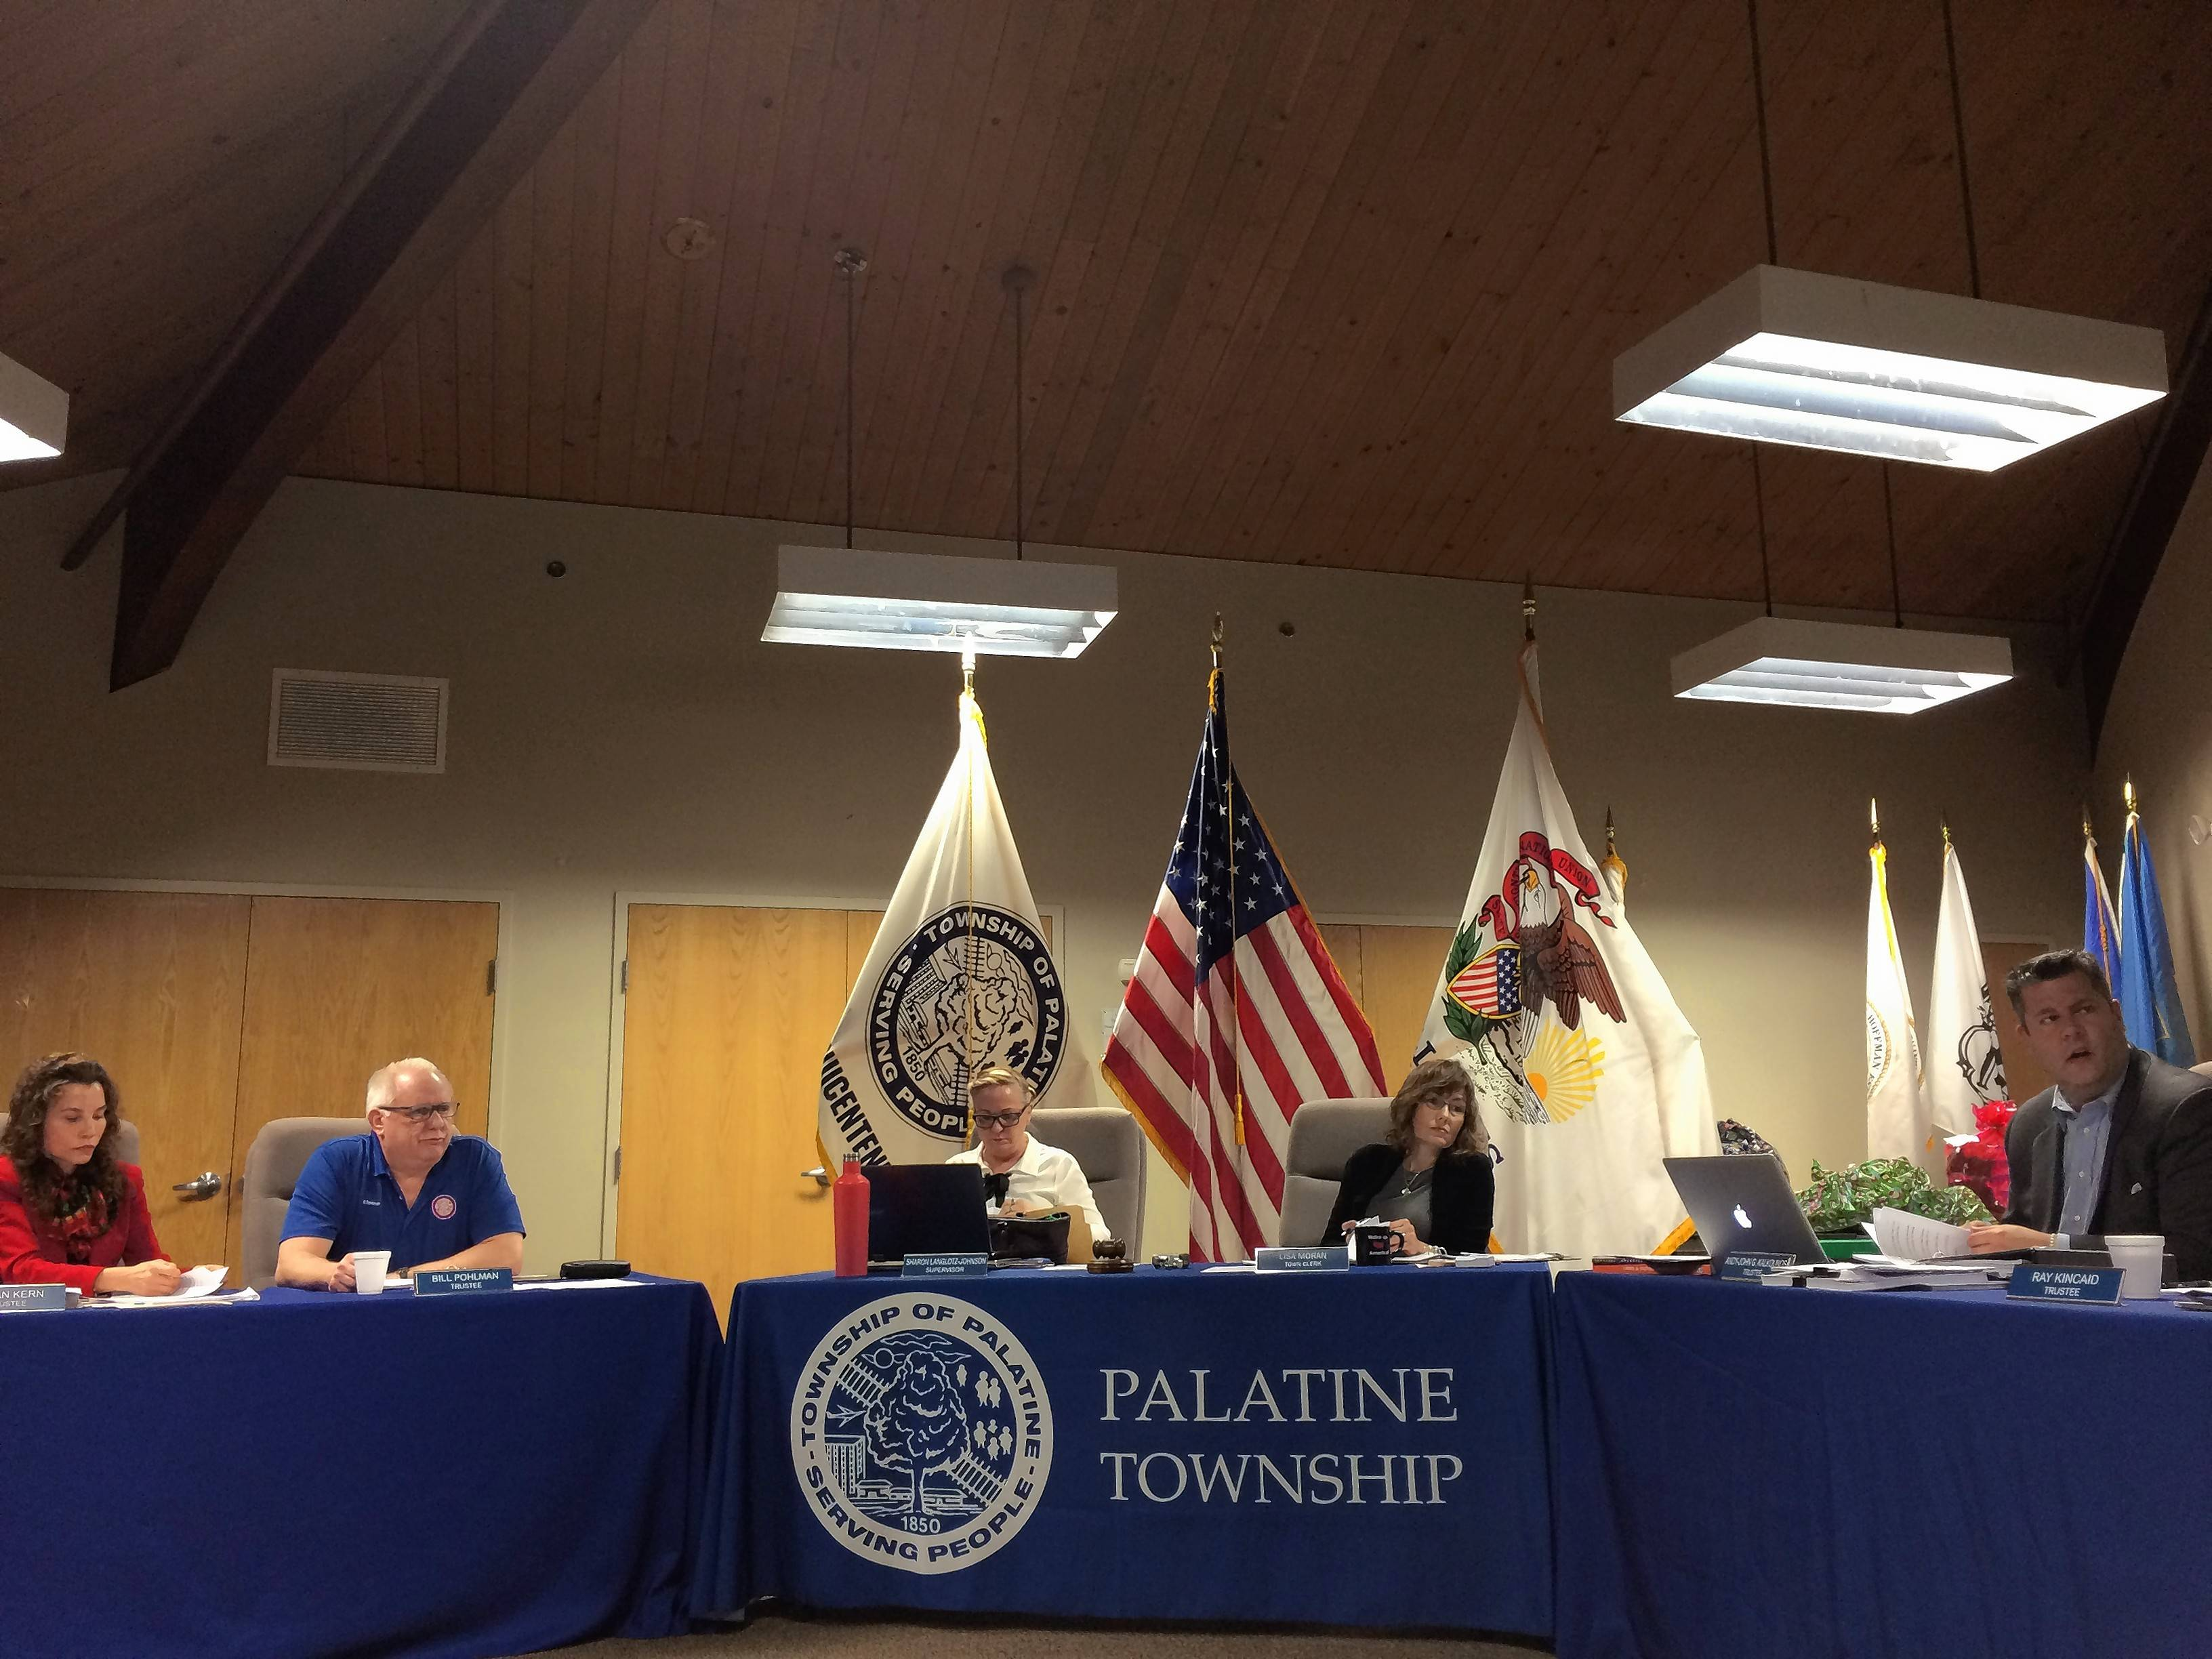 Palatine Township agrees to hire parliamentarian to run meetings